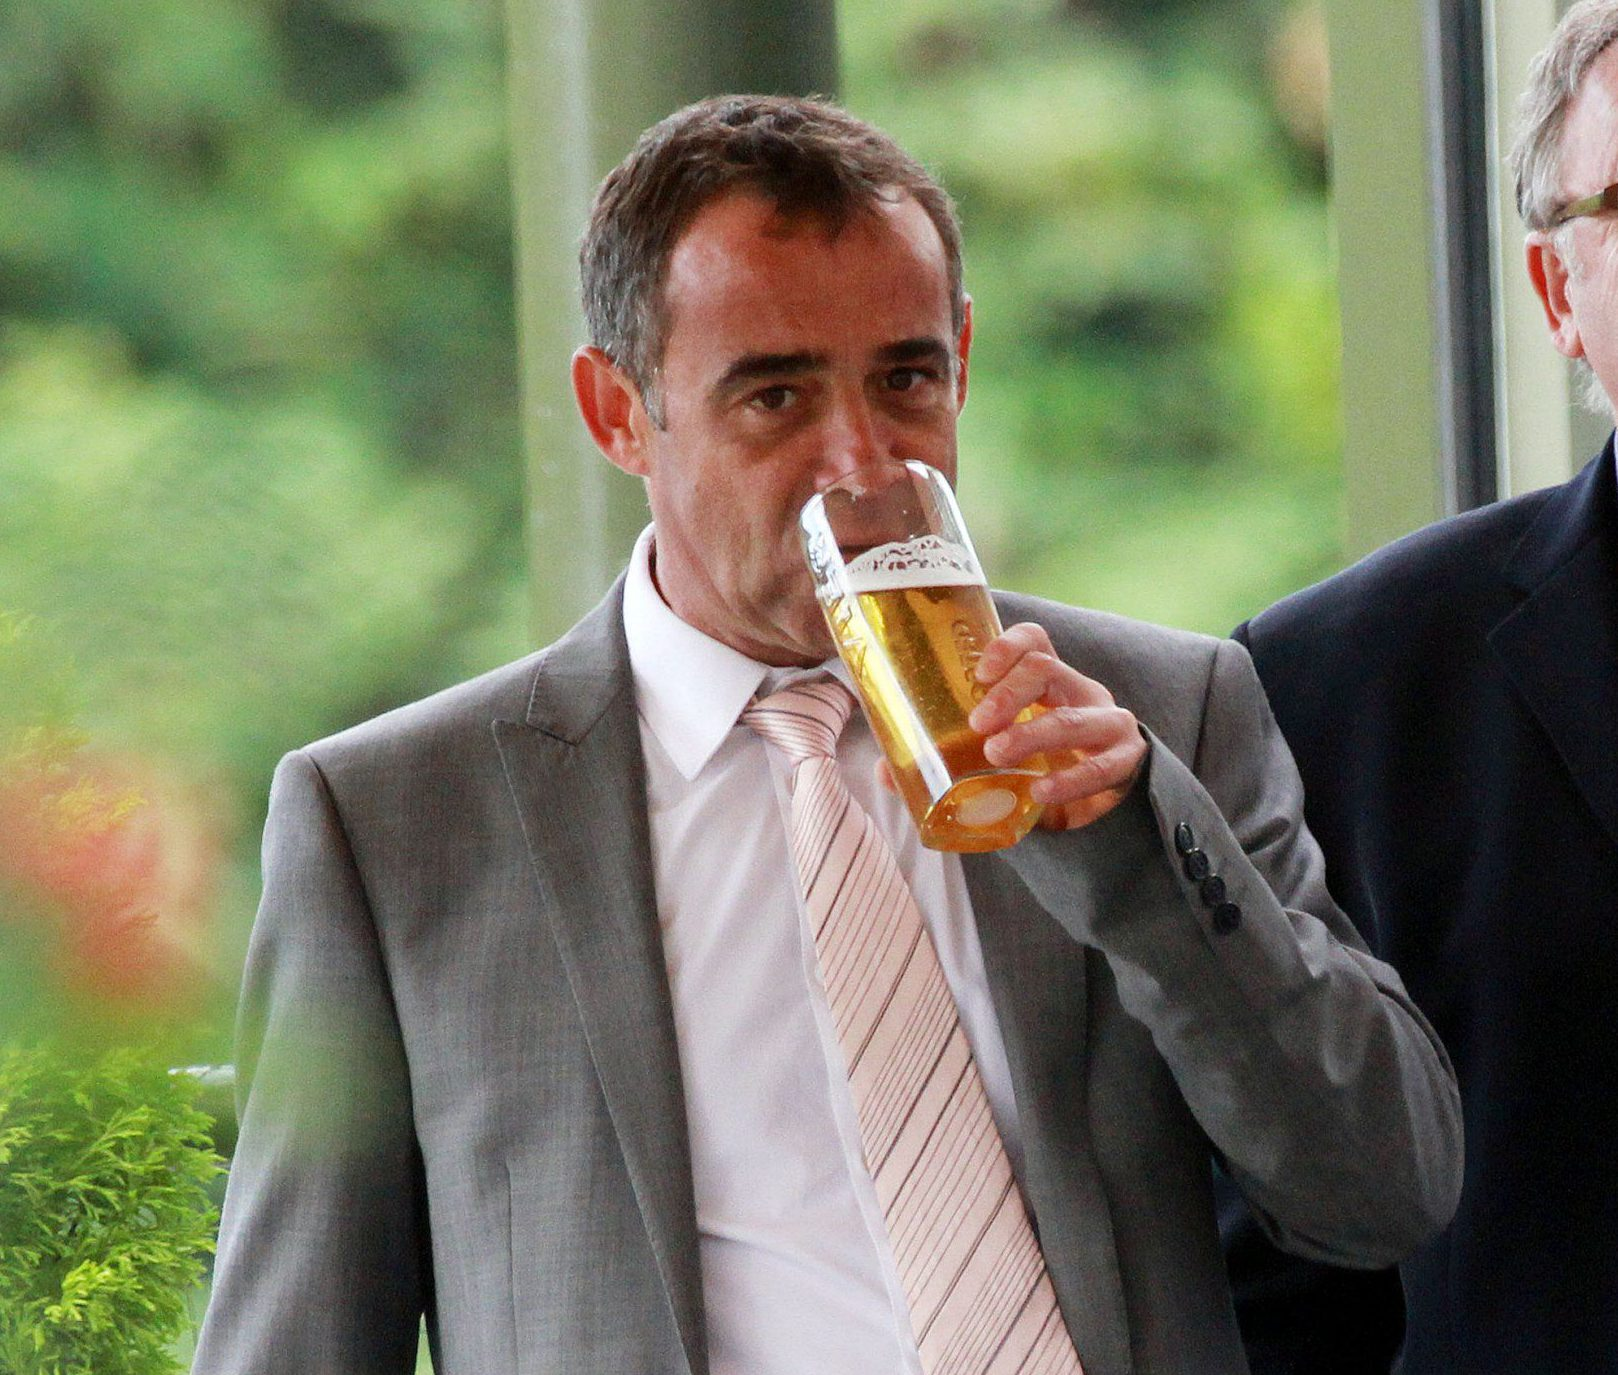 Coronation Street star Michael Le Vell drinks a pint to celebrate his not guilty verdict with his brother, Phil...<P>..Pictured: Michael Le Vell..<B>Ref: SPL608582 100913 </B><BR />..Picture by: Splash News<BR />..</P><P>..<B>Splash News and Pictures</B><BR />..Los Angeles: 310-821-2666<BR />..New York: 212-619-2666<BR />..London: 870-934-2666<BR />..photodesk@splashnews.com<BR />..</P>